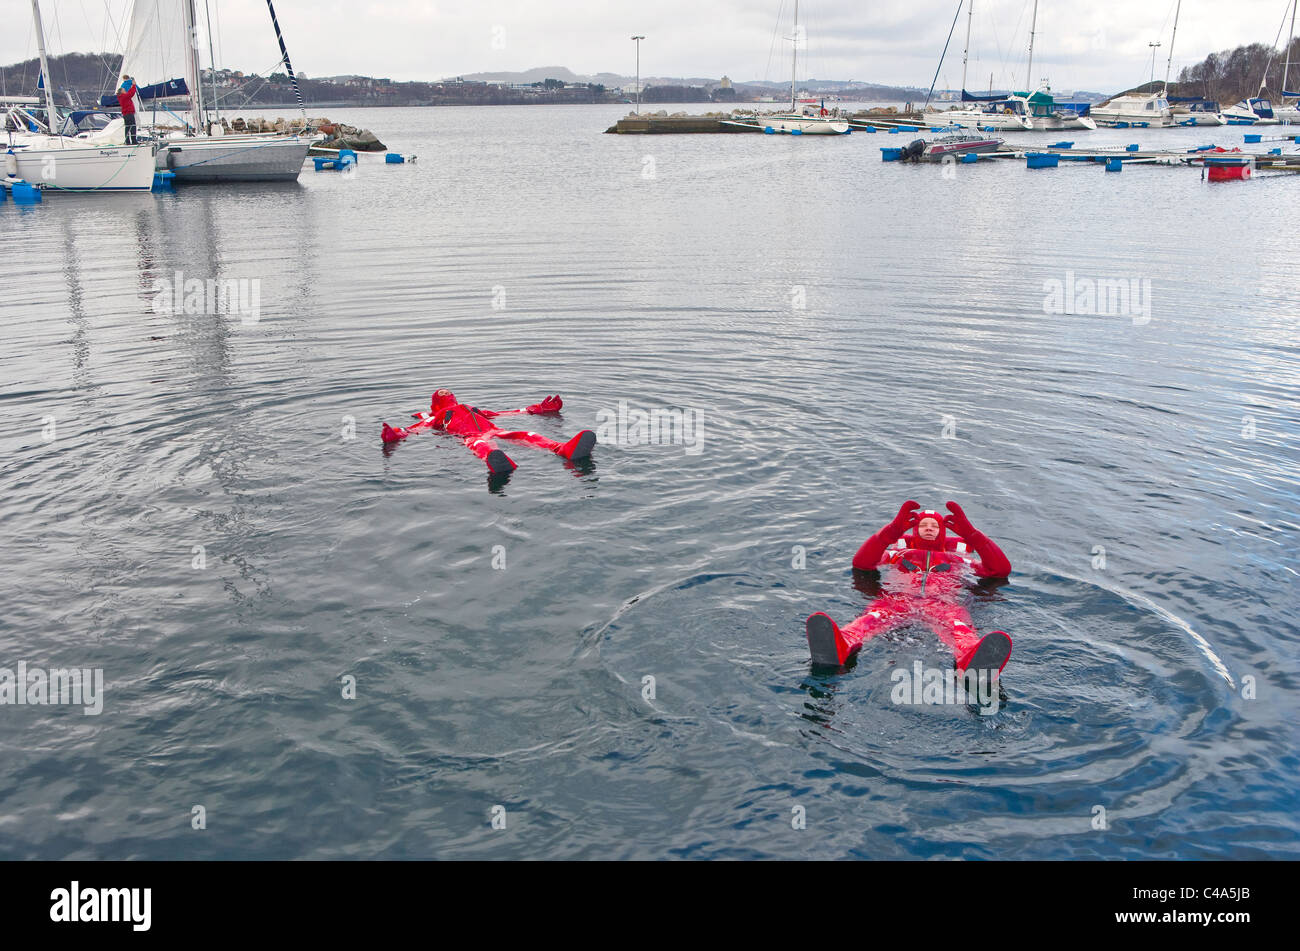 Sailors try out survival suits. - Stock Image